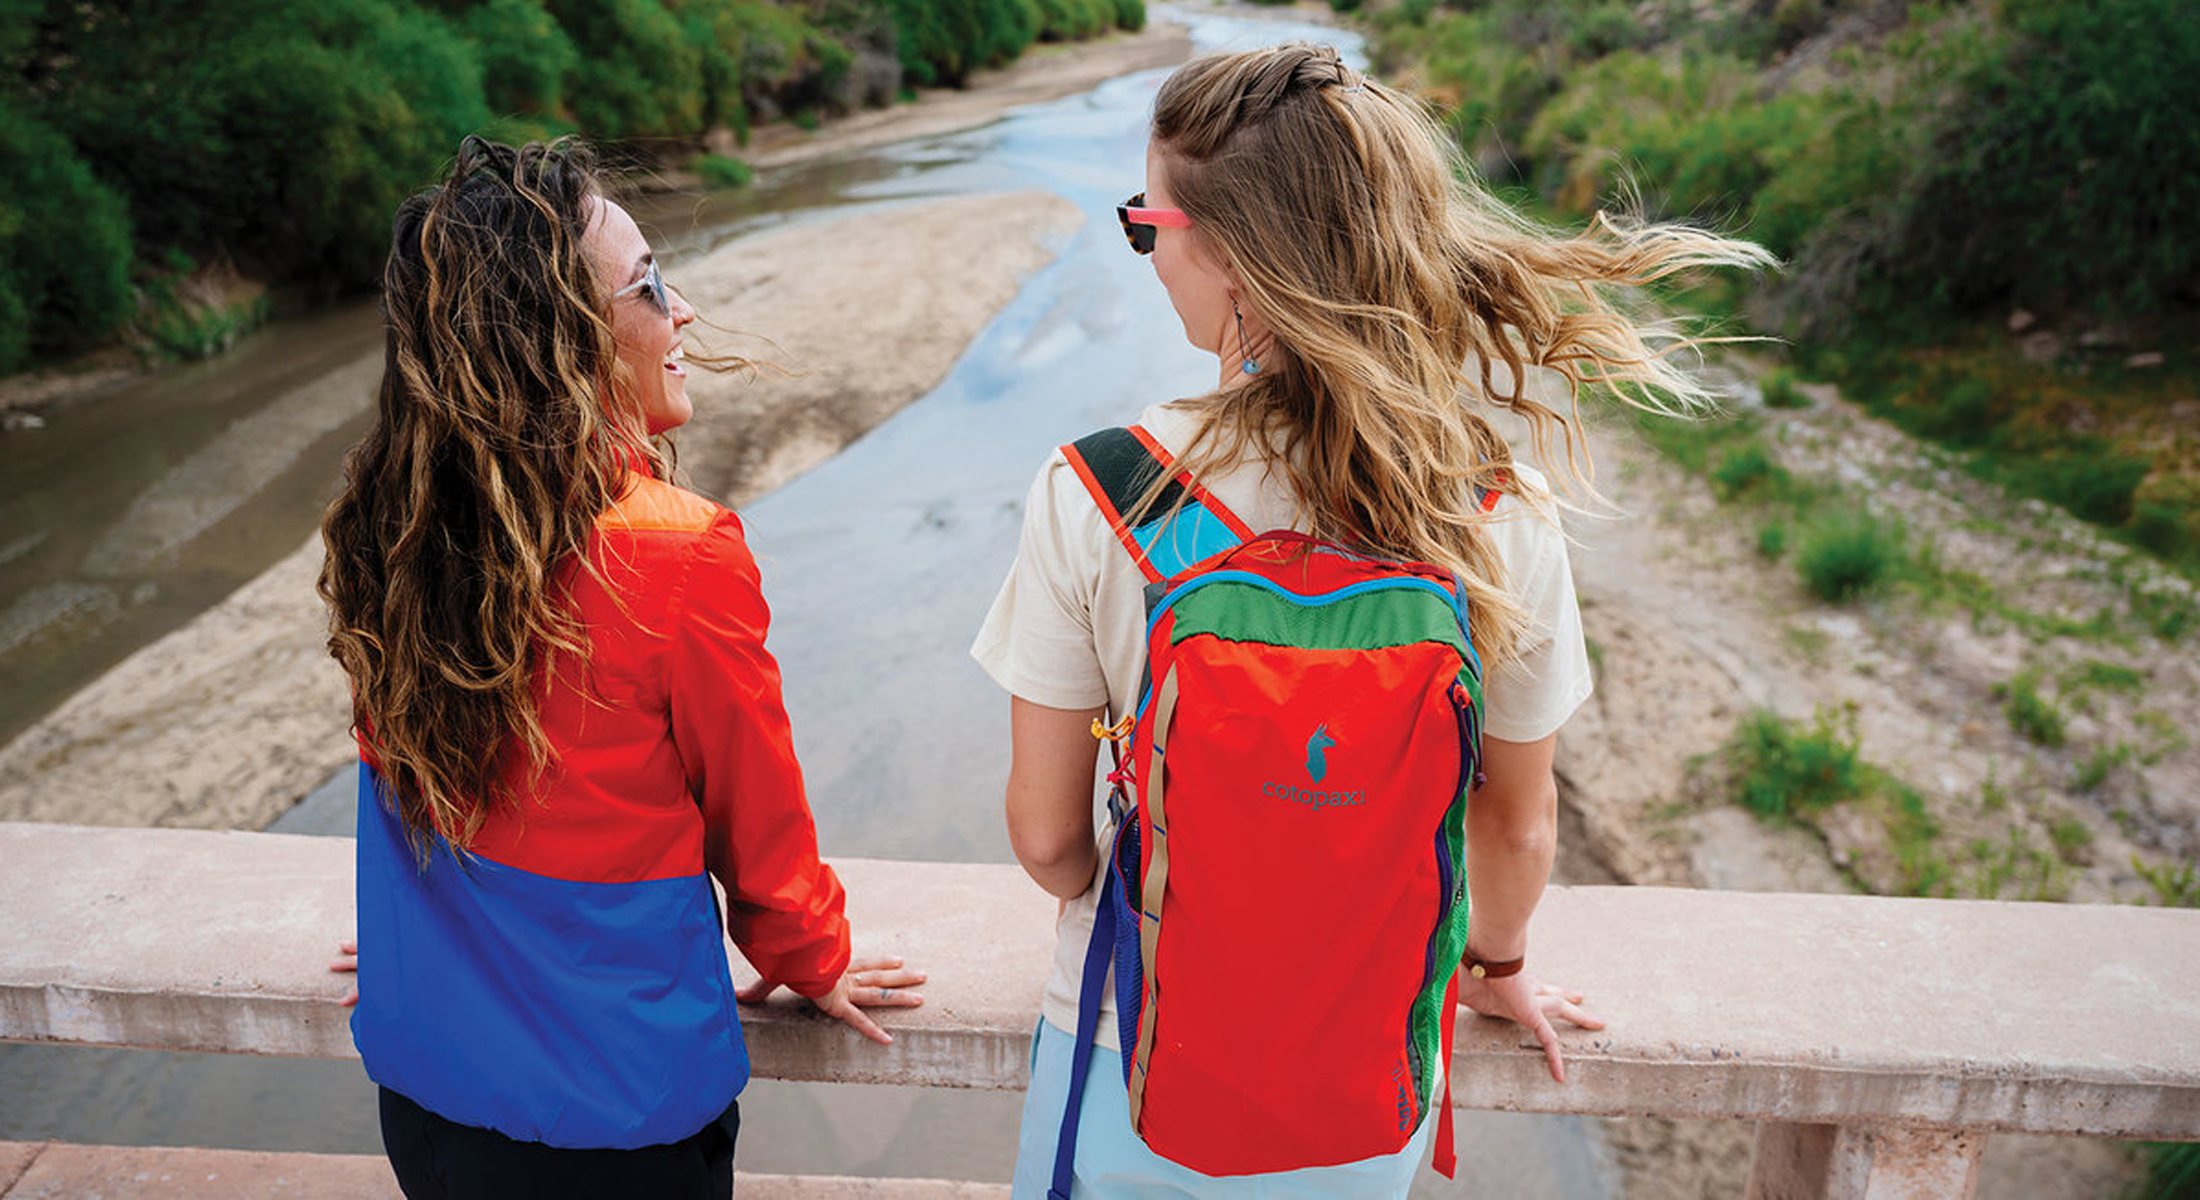 *BRAND SPOTLIGHT* Introducing Cotopaxi – Coming Soon!